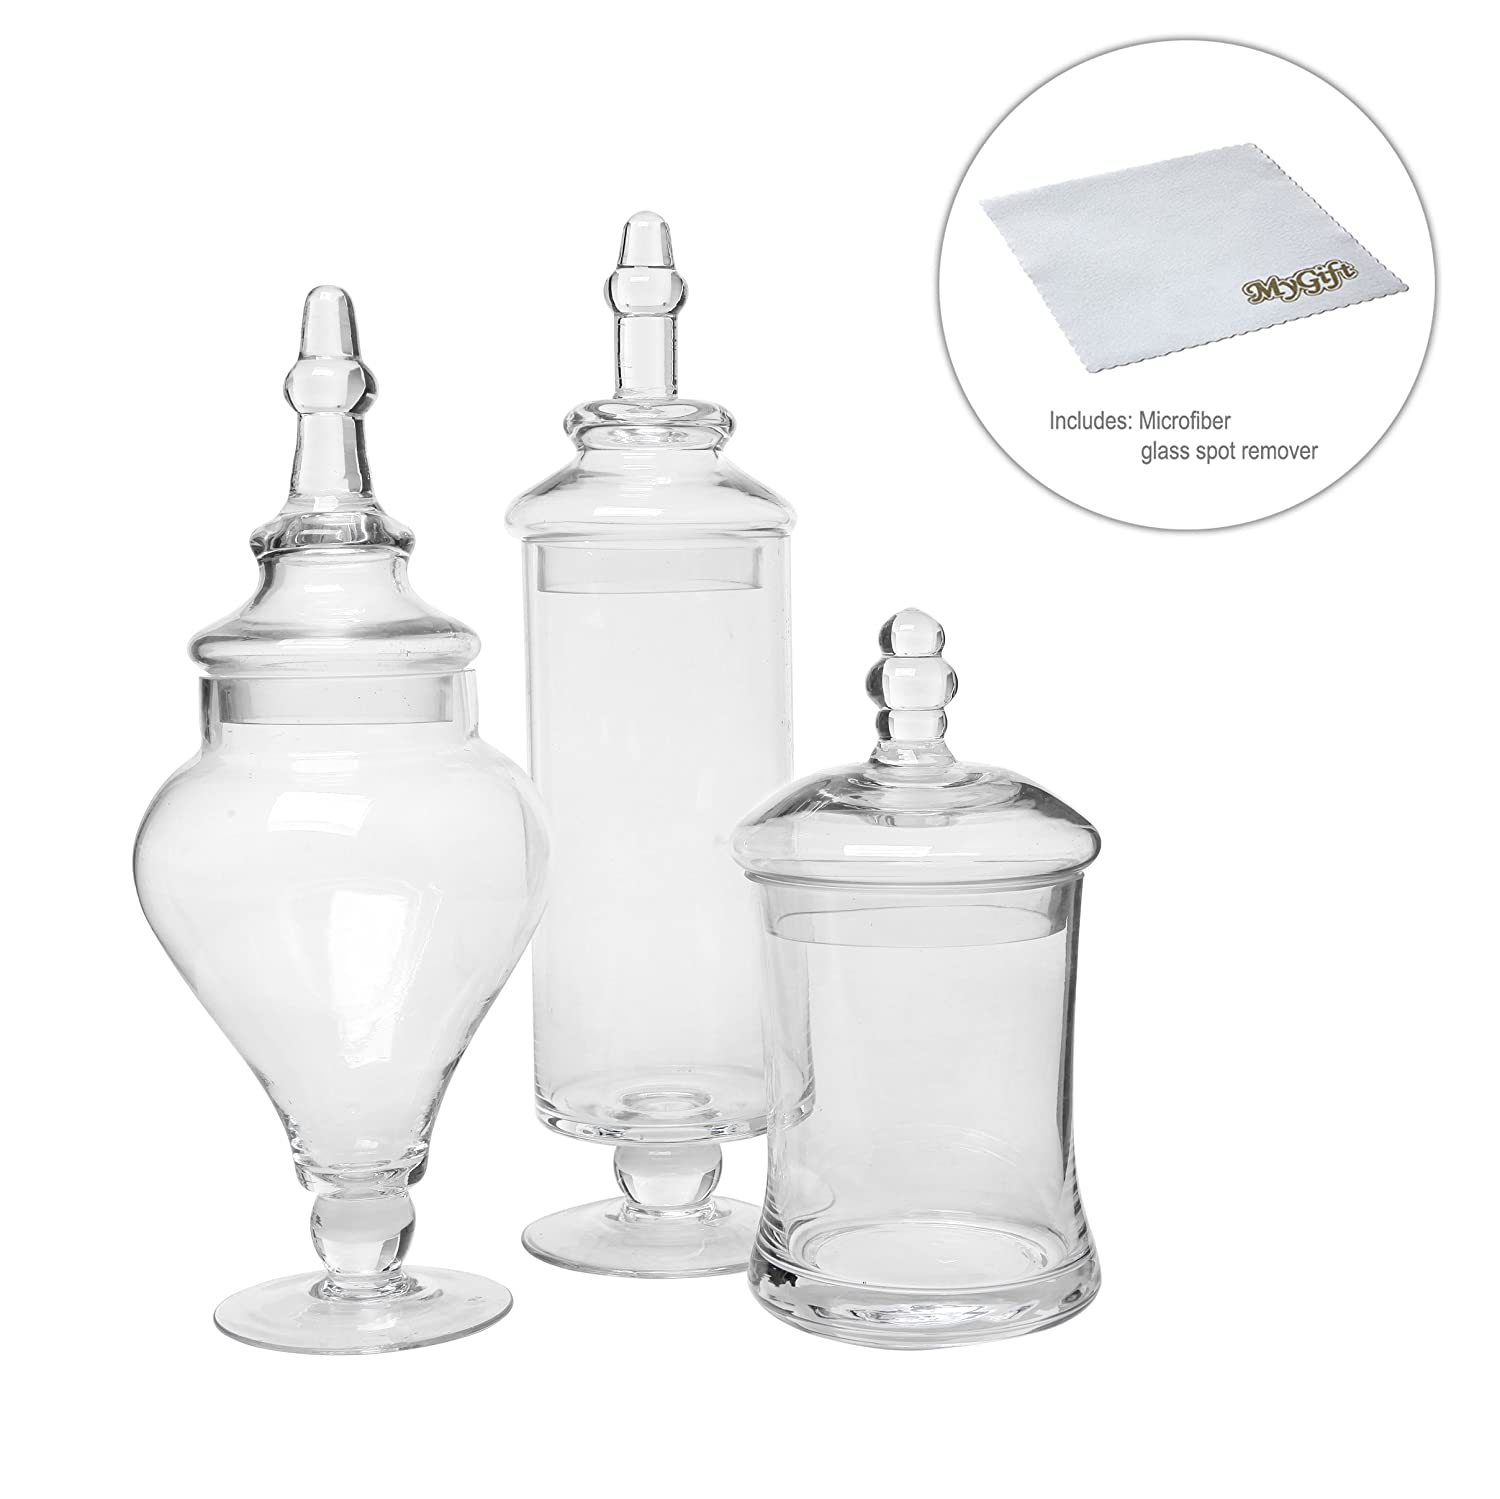 amazon com designer clear glass apothecary jars 3 piece set amazon com designer clear glass apothecary jars 3 piece set decorative weddings candy buffet mygift home kitchen